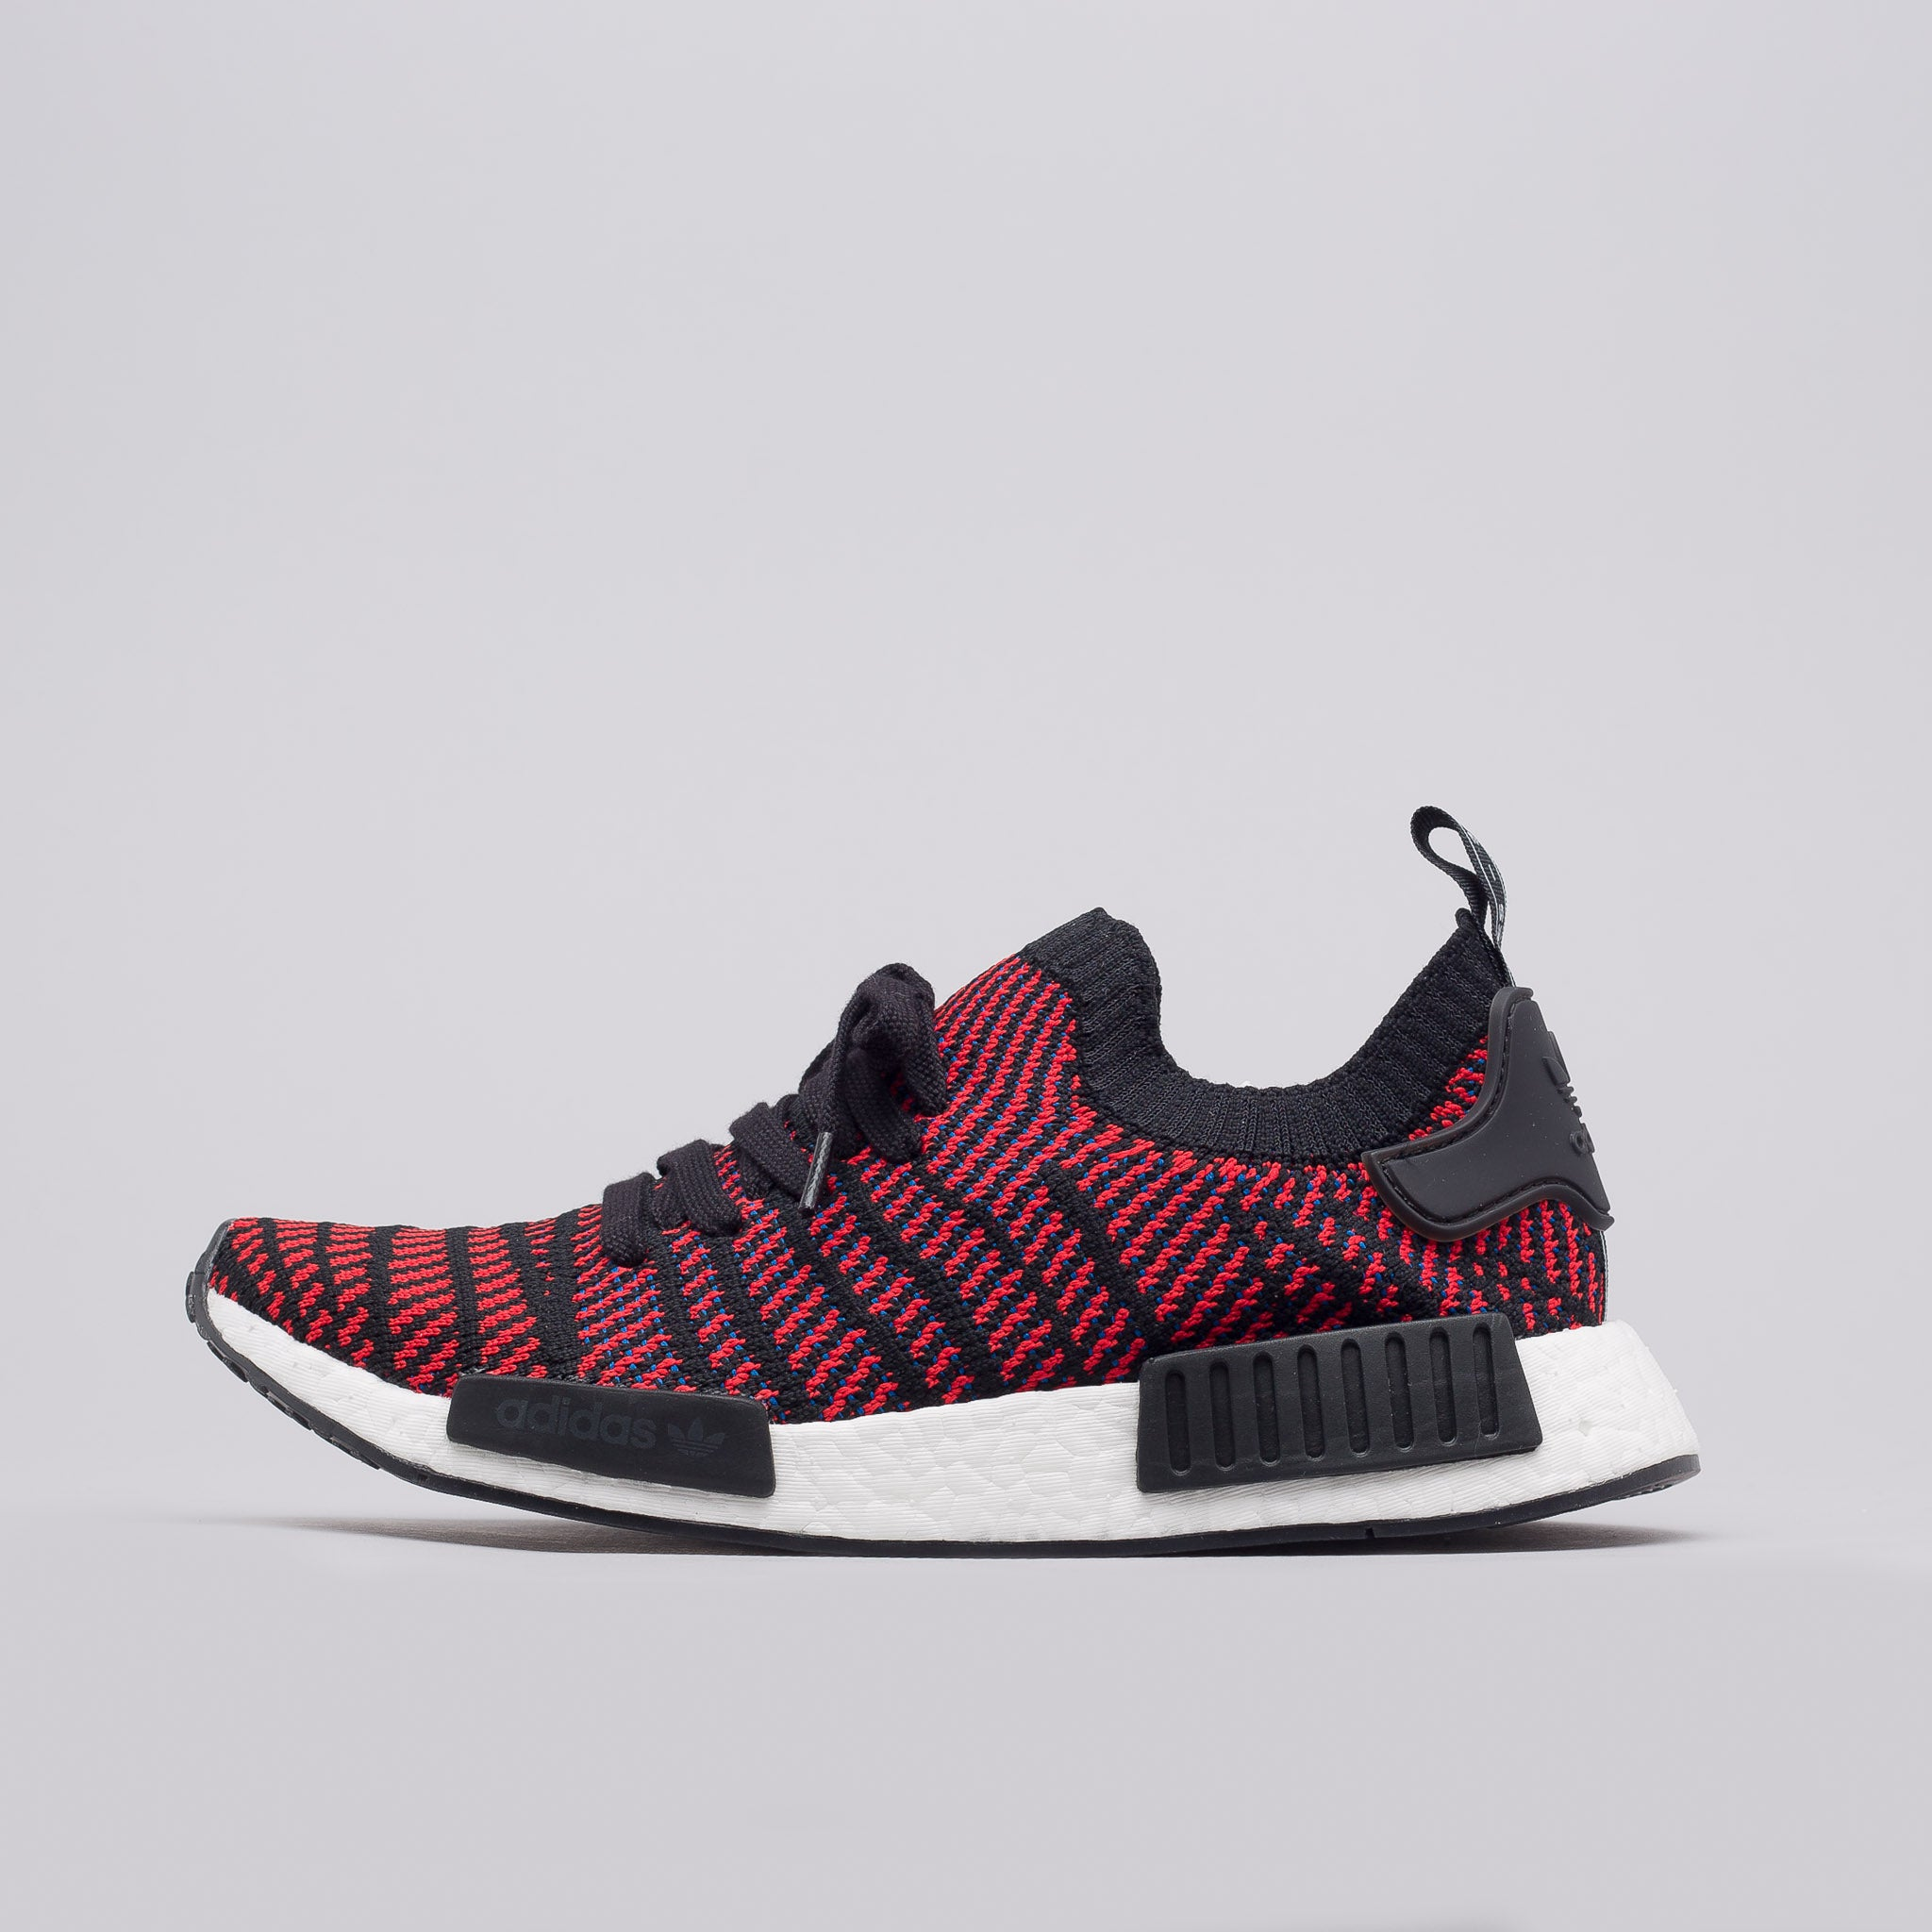 Cheap Sale NMD R1 PK Shoes, Buy Adidas NMD R1 PK Shoes